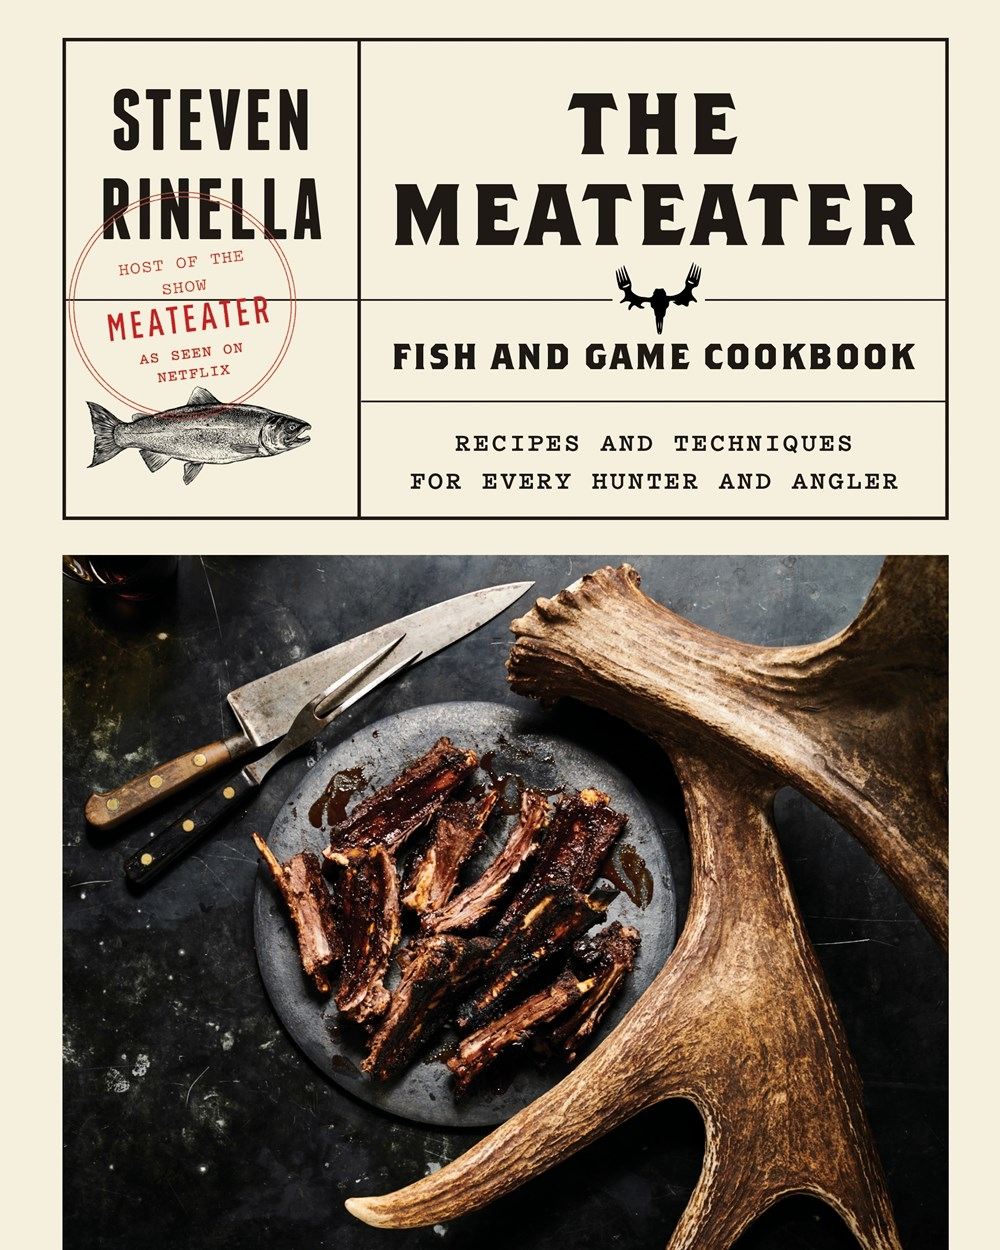 The Meateater Game and Fish Cookbook: Recipes and Techniques for Every Hunter and Angler by Steven Rinella, ISBN: 9780399590078